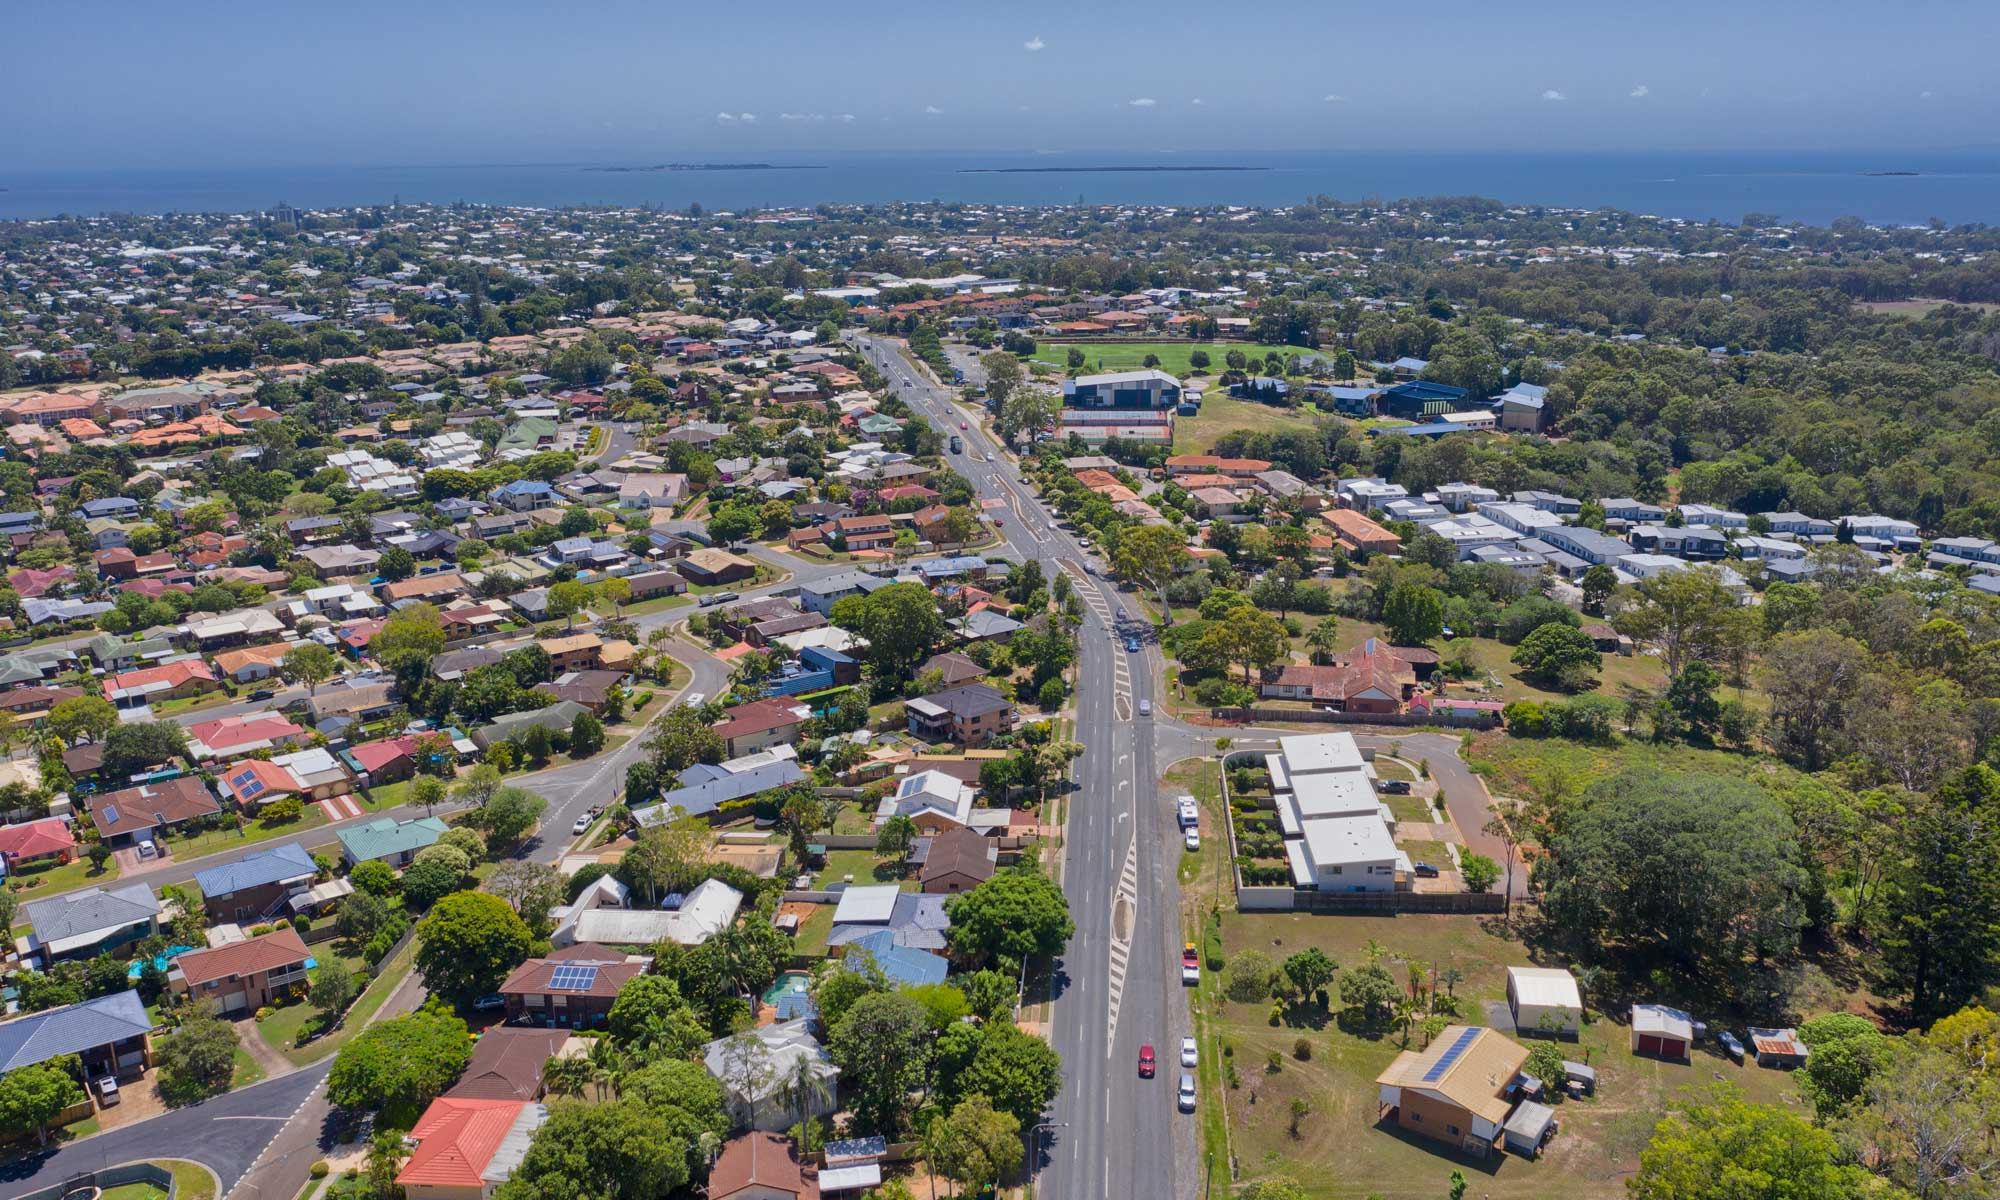 90 meters up - aerial drone photography 357 Manly Rd, Manly Rd West